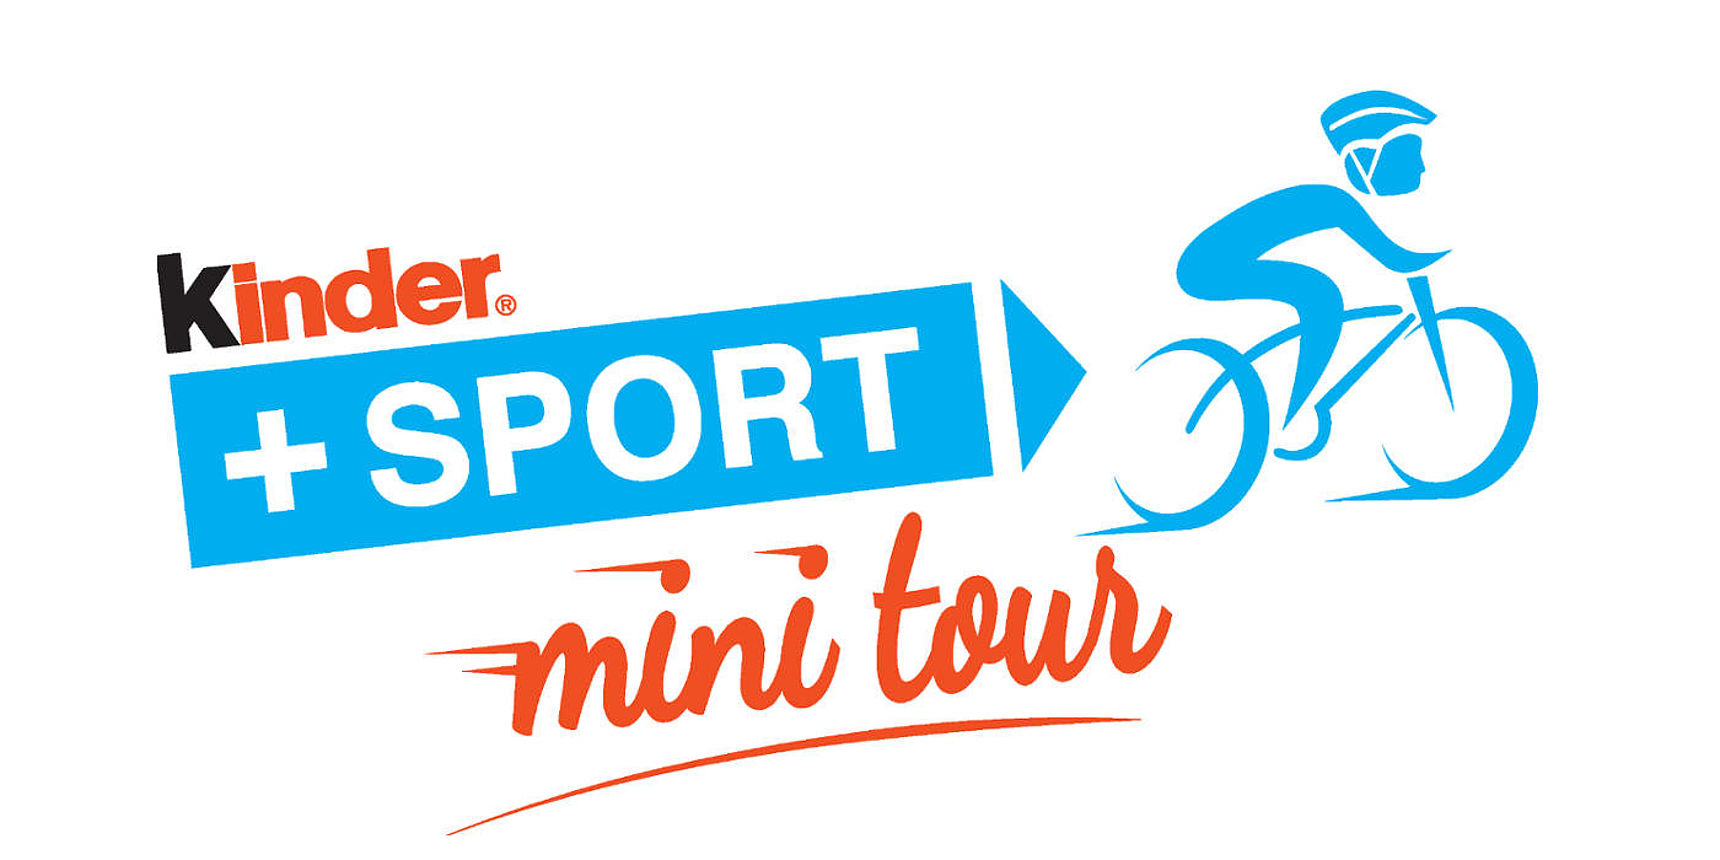 Logo kinder+Sport mini tour